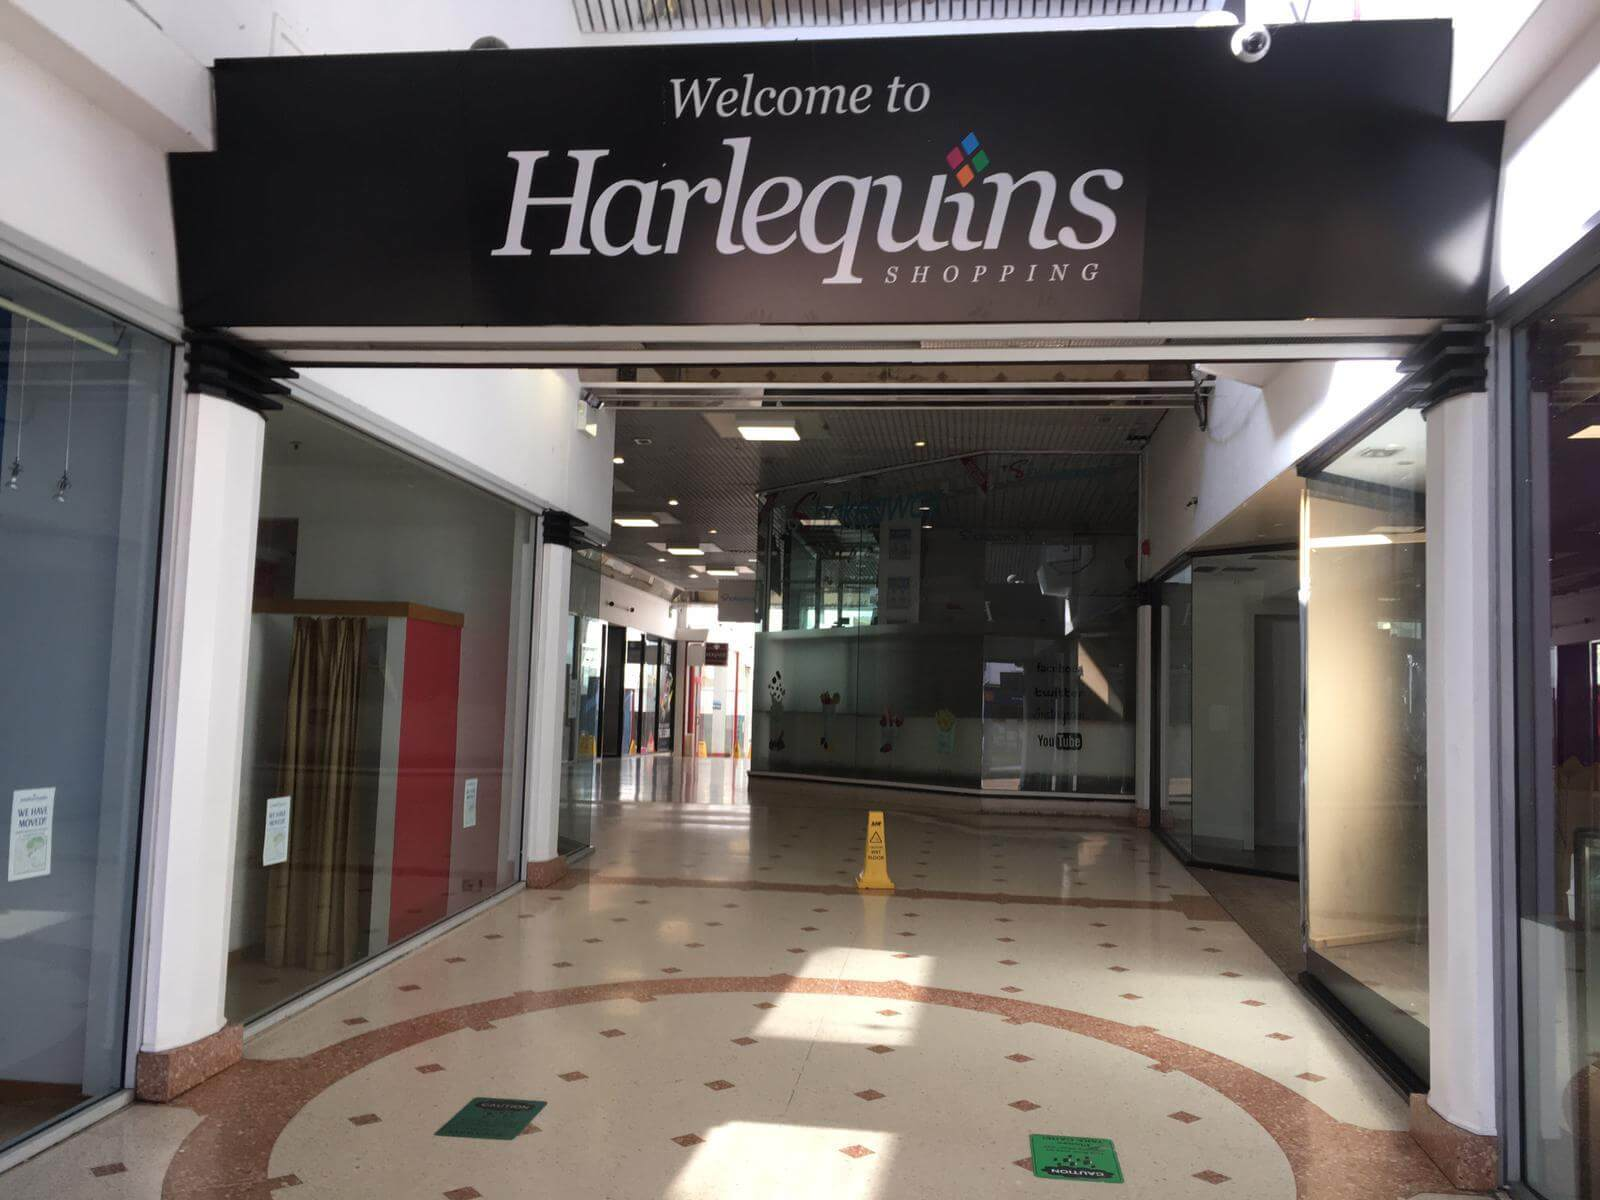 The existing Harlequins shopping centre. Image: Daniel Clark